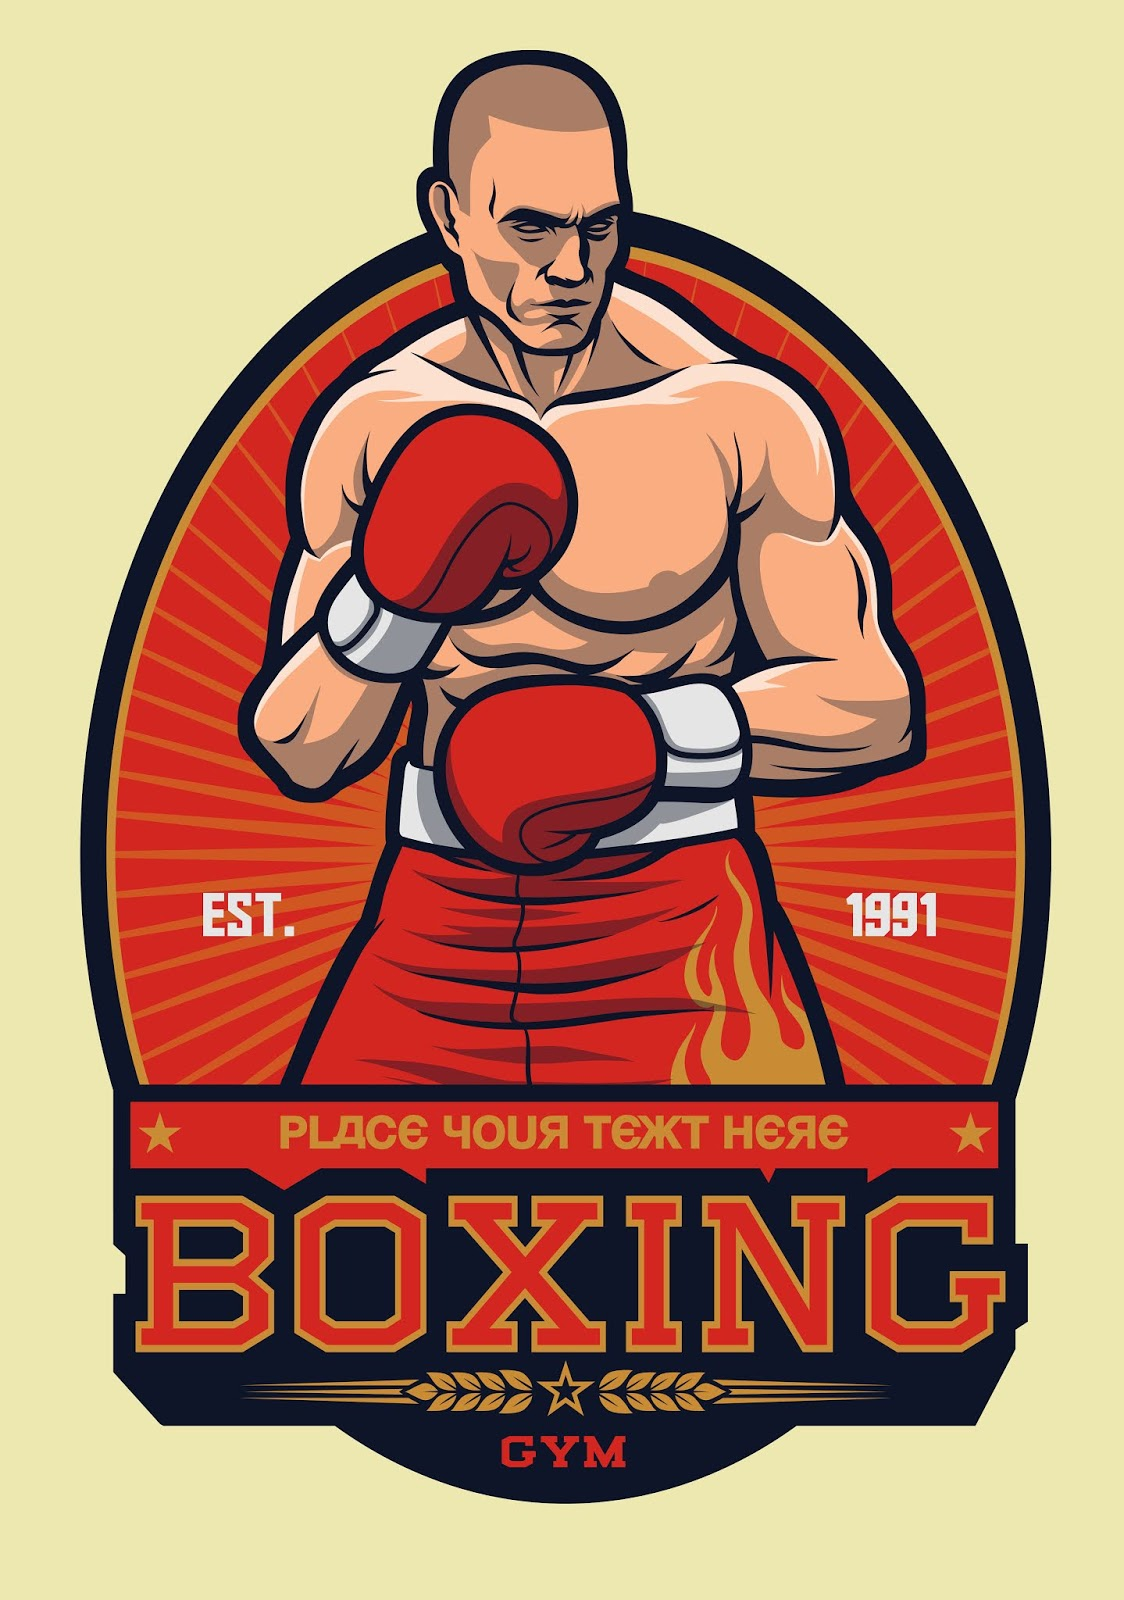 Boxing Fighter Stance With Sun Ray Free Download Vector CDR, AI, EPS and PNG Formats